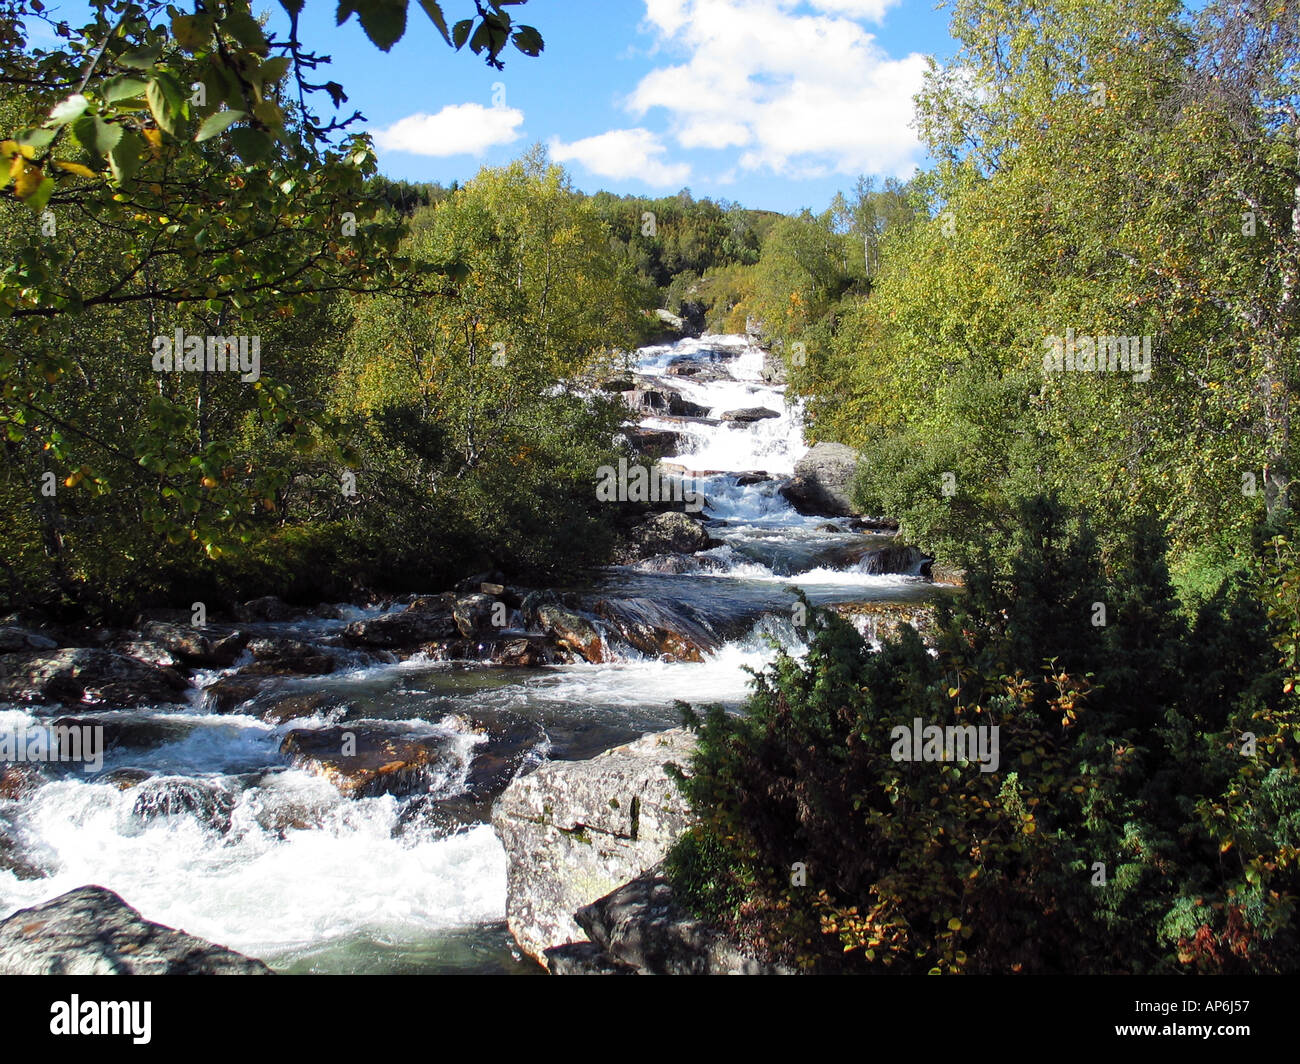 Waterfall on Slettefjel during Indian summer Valdresflya, Jotunheimen, Norway - Stock Image